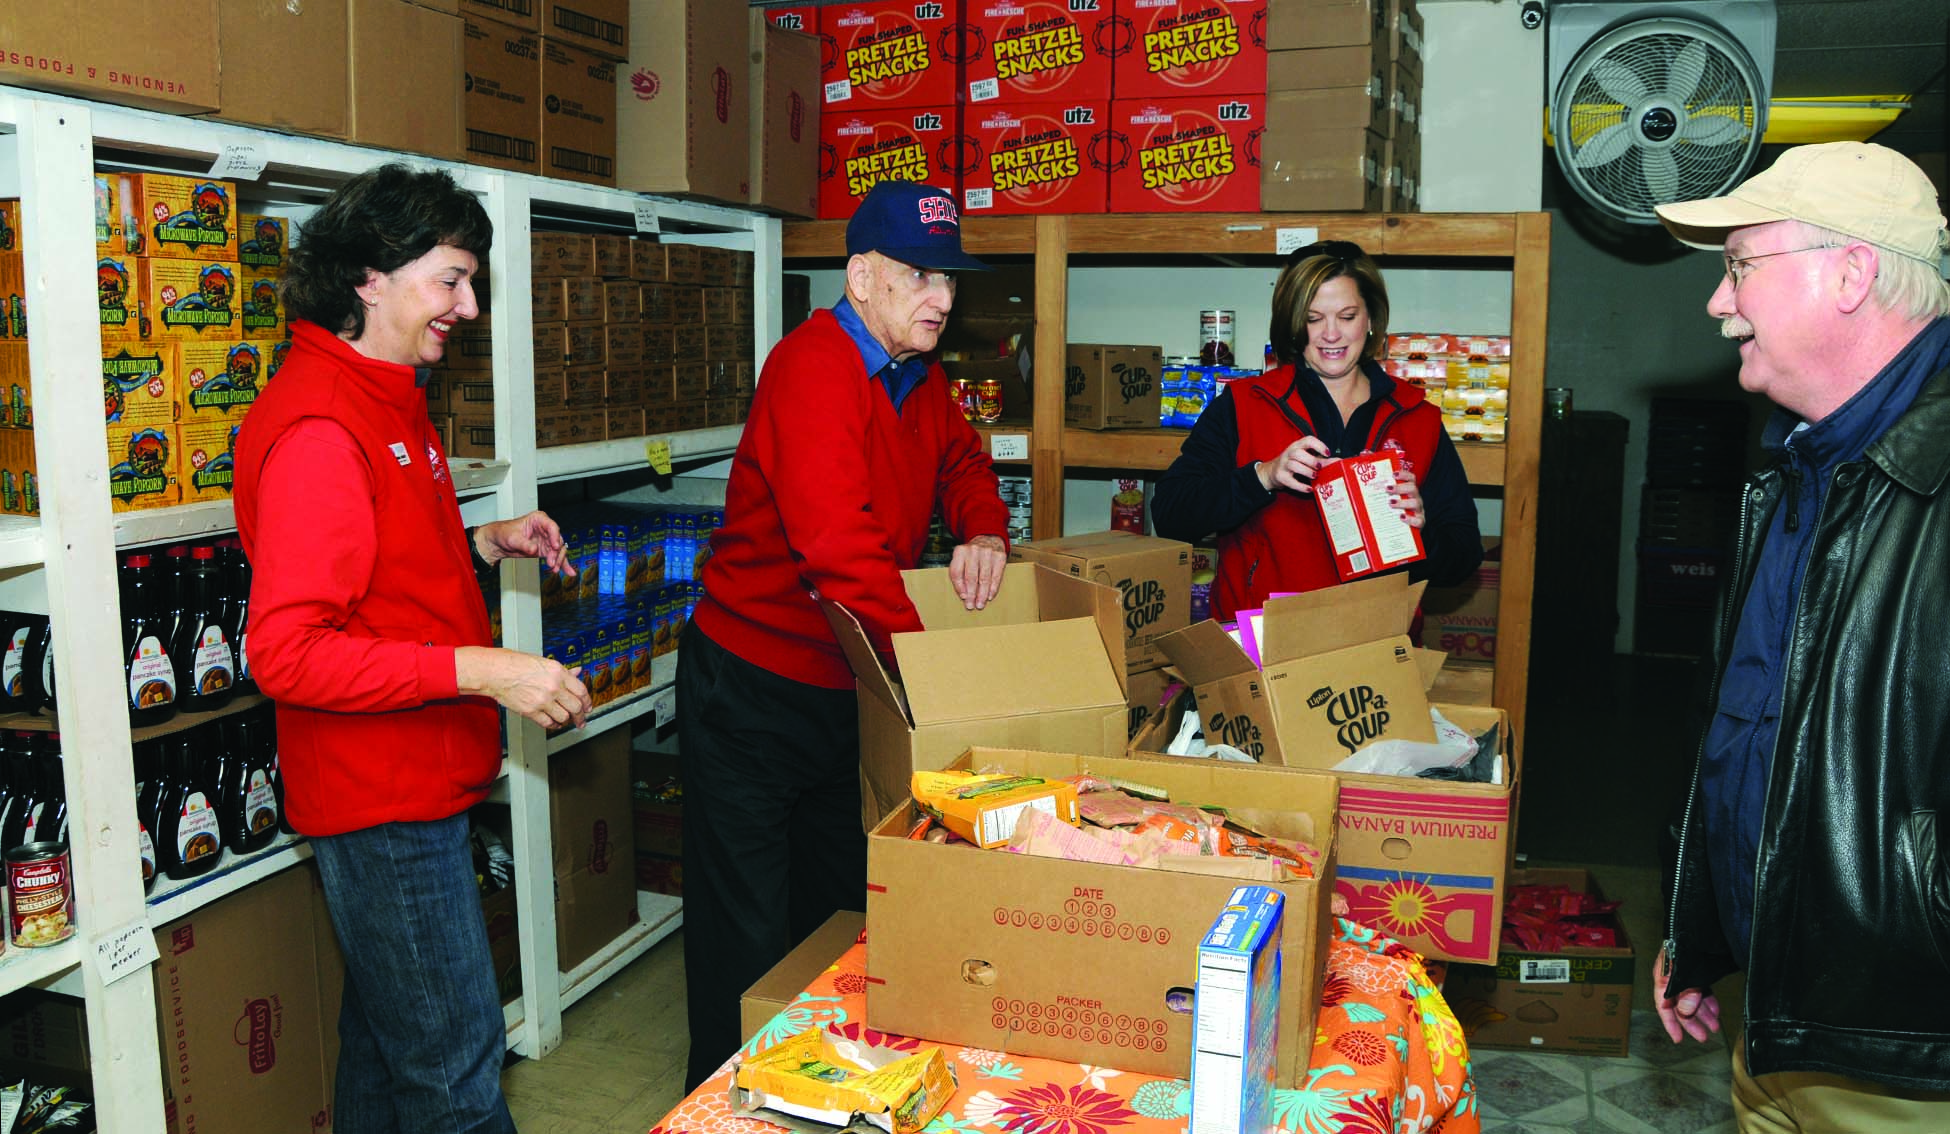 Dr. Jody Harpster, president (right) and Ship alumni (from left) Brenda Gabler '77–'80M, Ray Reber '55, and Lorie Davis '98M restock shelves at King's Kettle Food Pantry as part of Homecoming weekend.